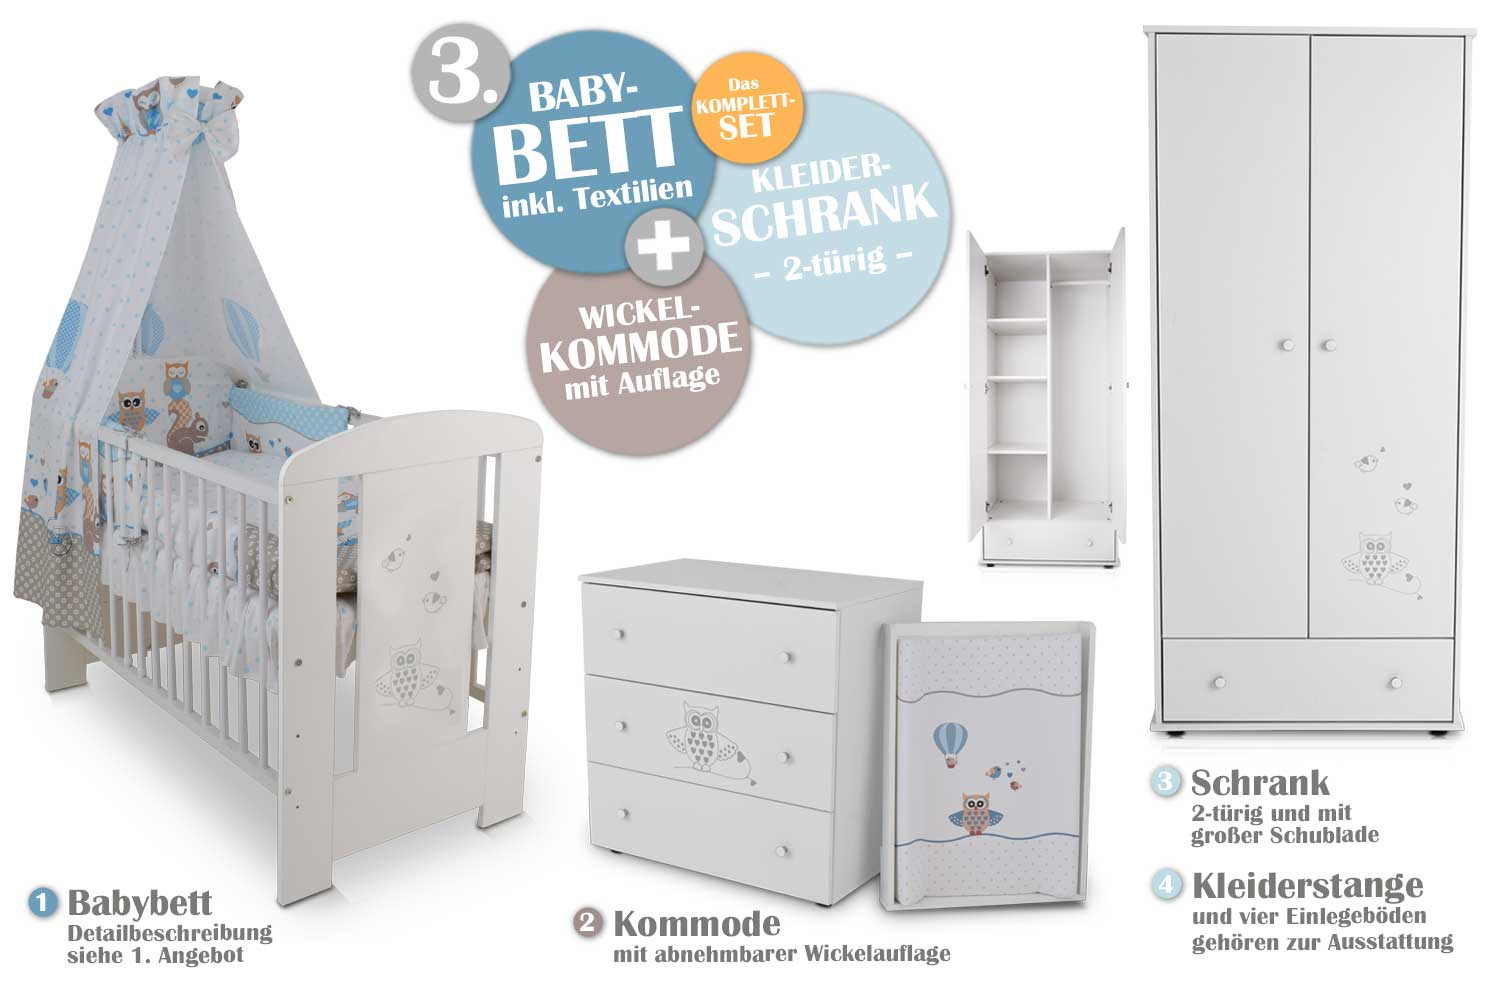 babyzimmer eule blau babybett kinderbett wickelkommode schrank babyzimmer ebay. Black Bedroom Furniture Sets. Home Design Ideas